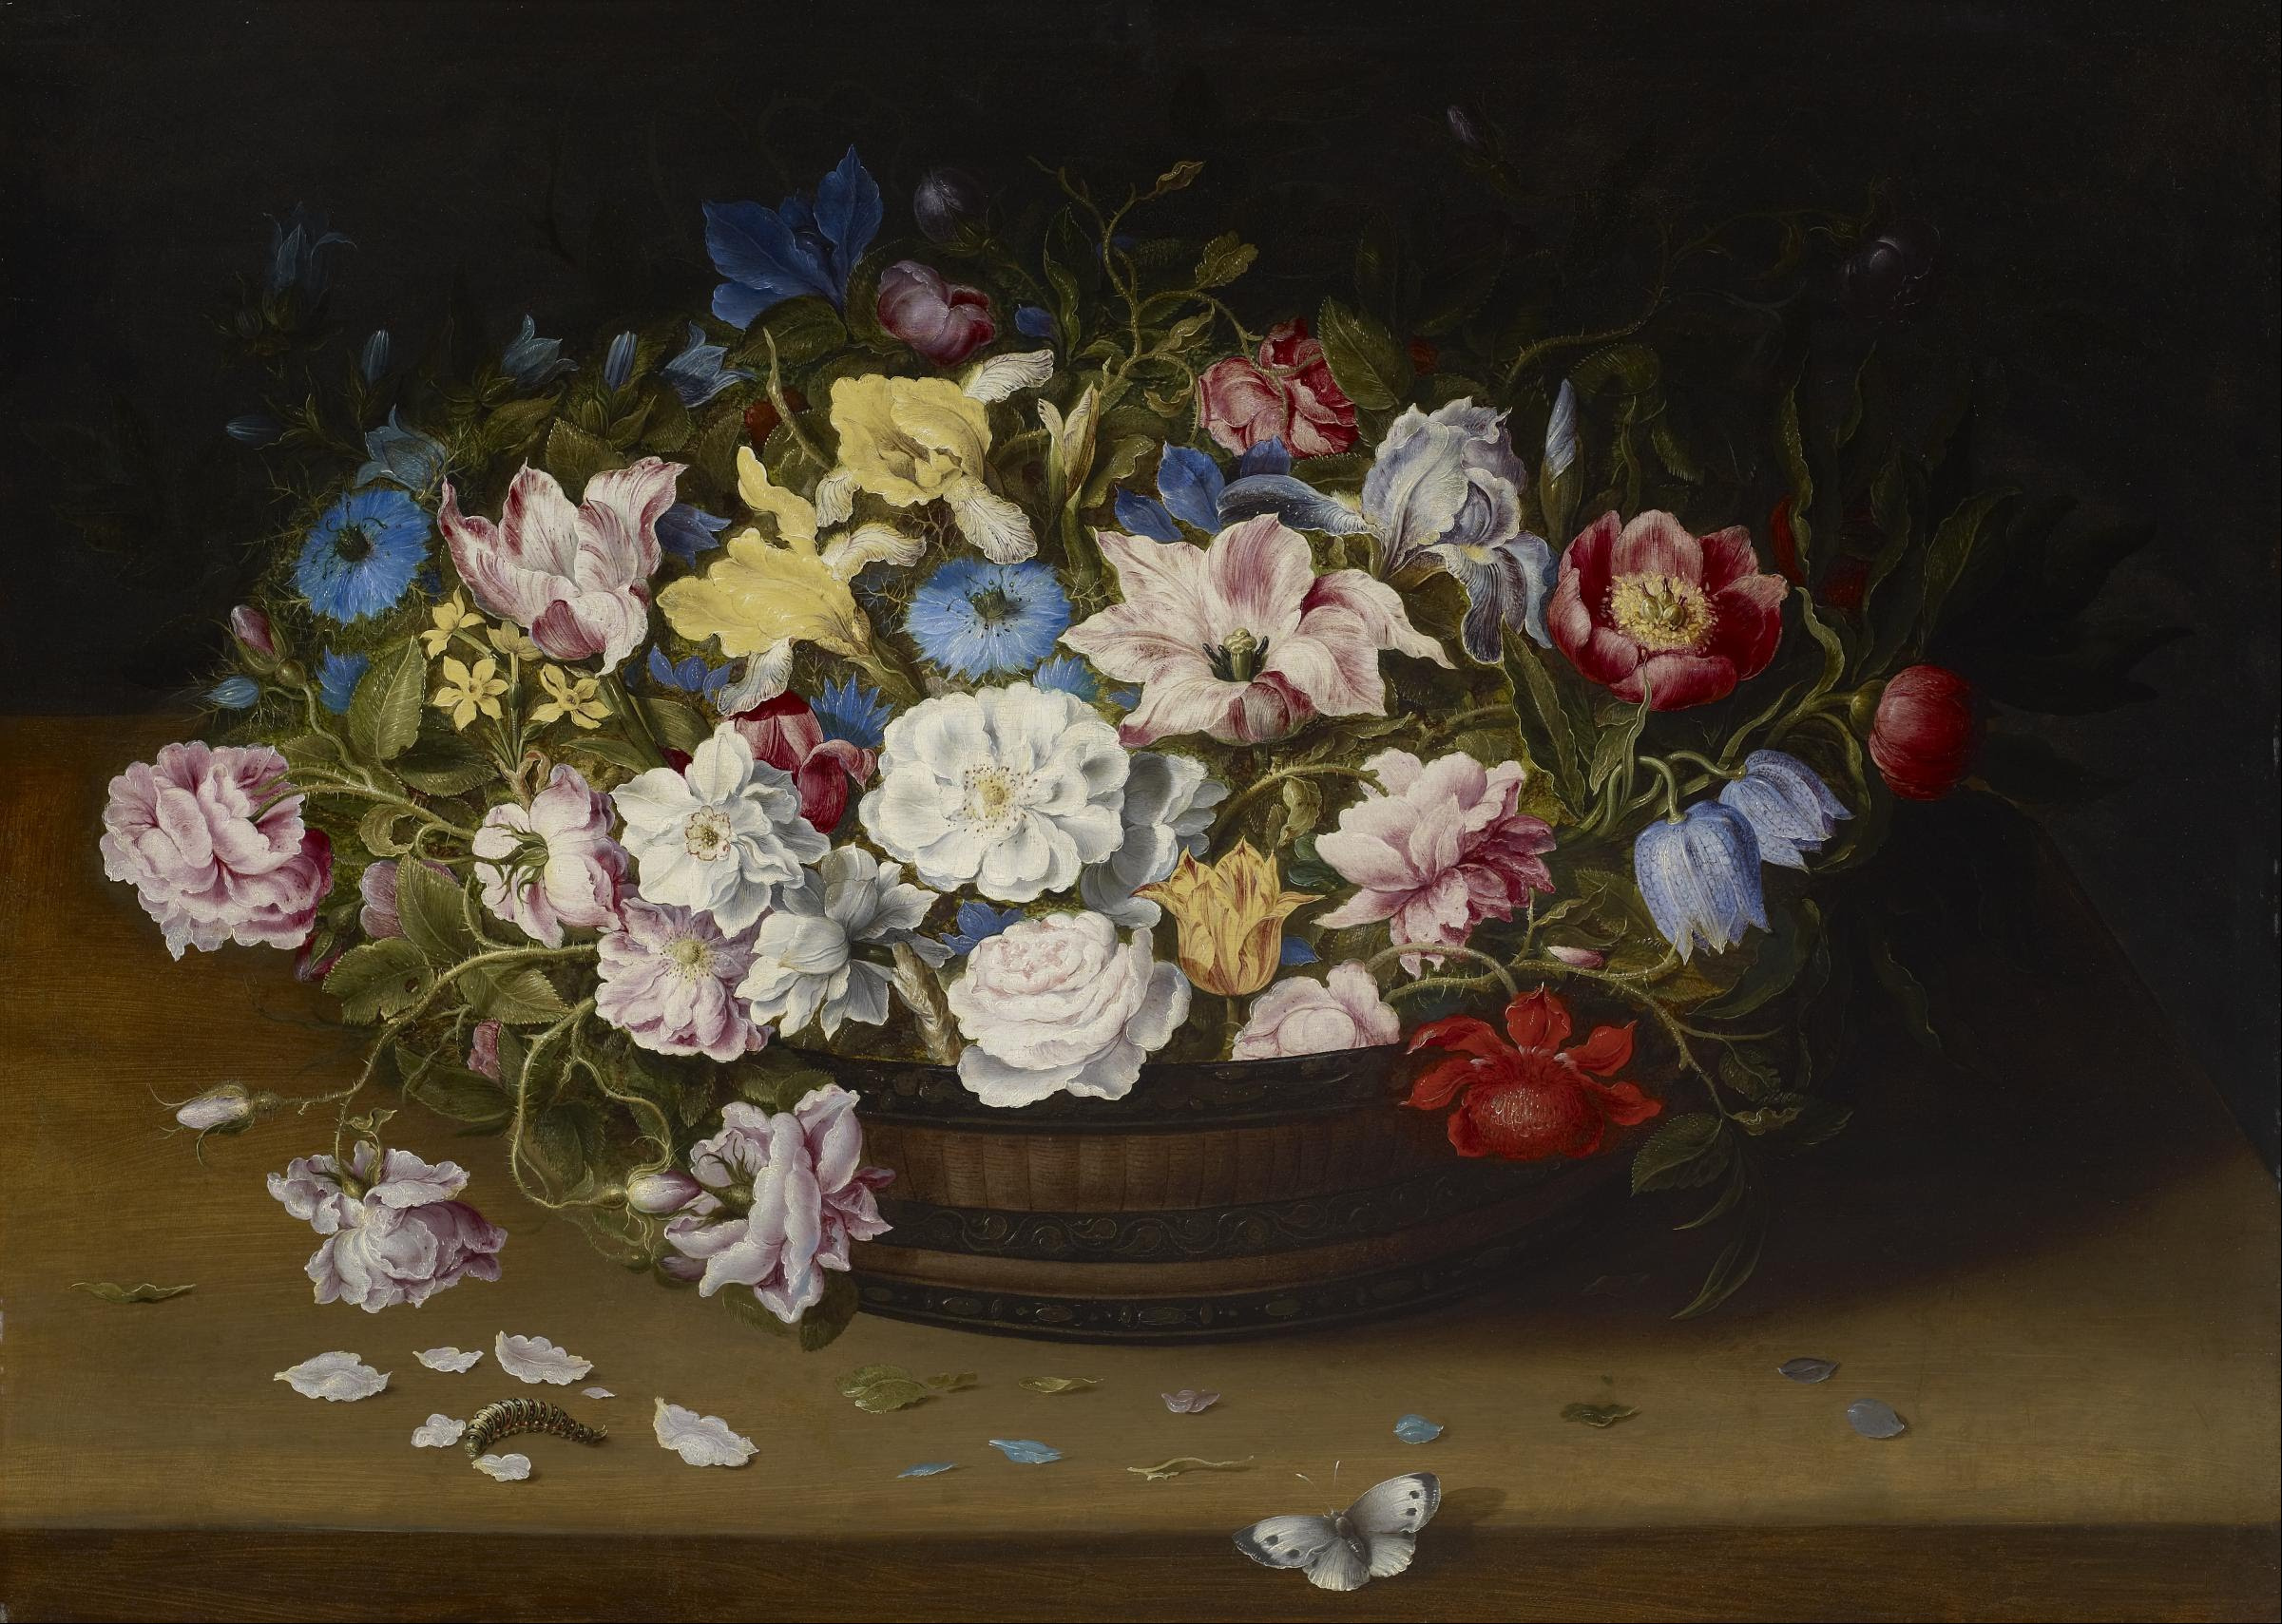 Pittori Fiamminghi National Gallery File Osias Beert Basket Of Flowers Google Art Project